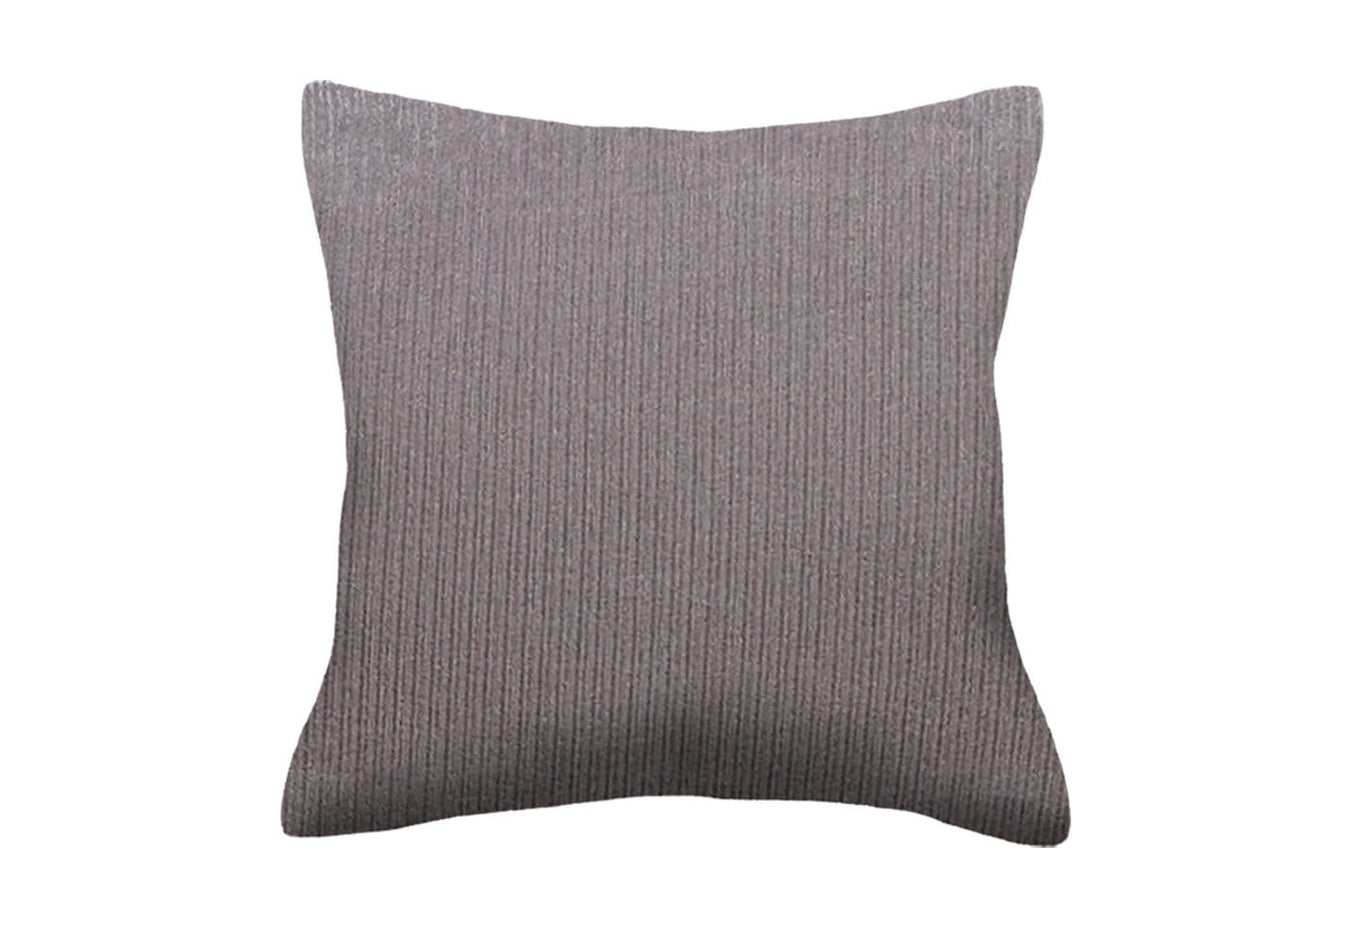 Ultimate St Chenille Ind 18 Inch Square Coordinating Pillow